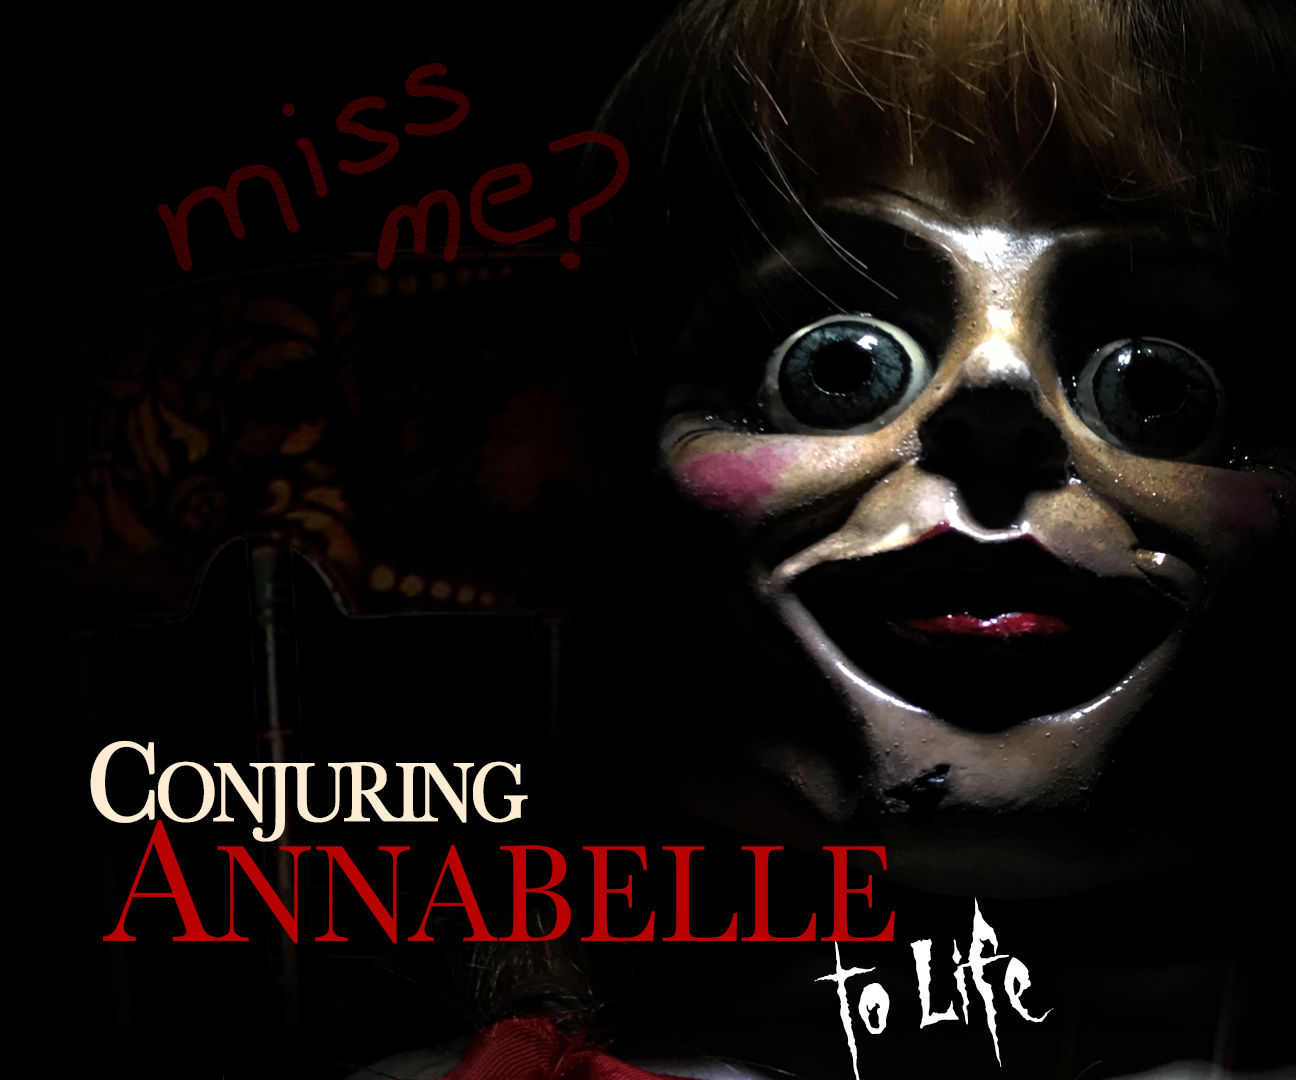 Conjuring Annabelle!